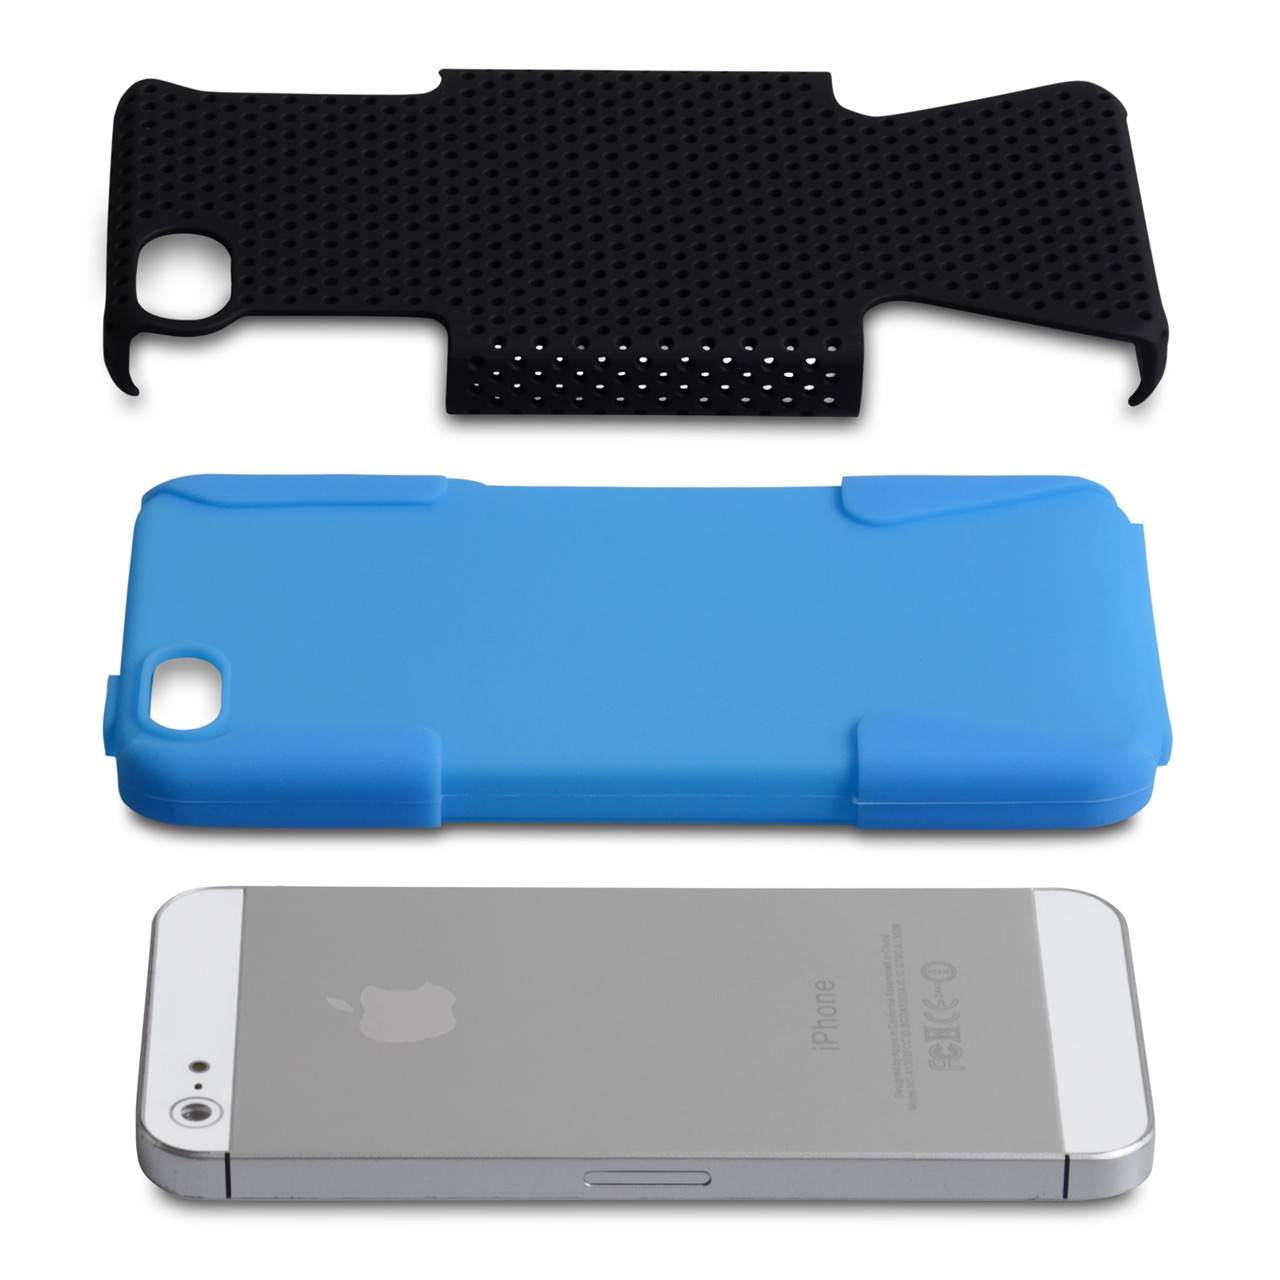 YouSave Accessories iPhone 5 / 5S Blue Mesh Combo Case